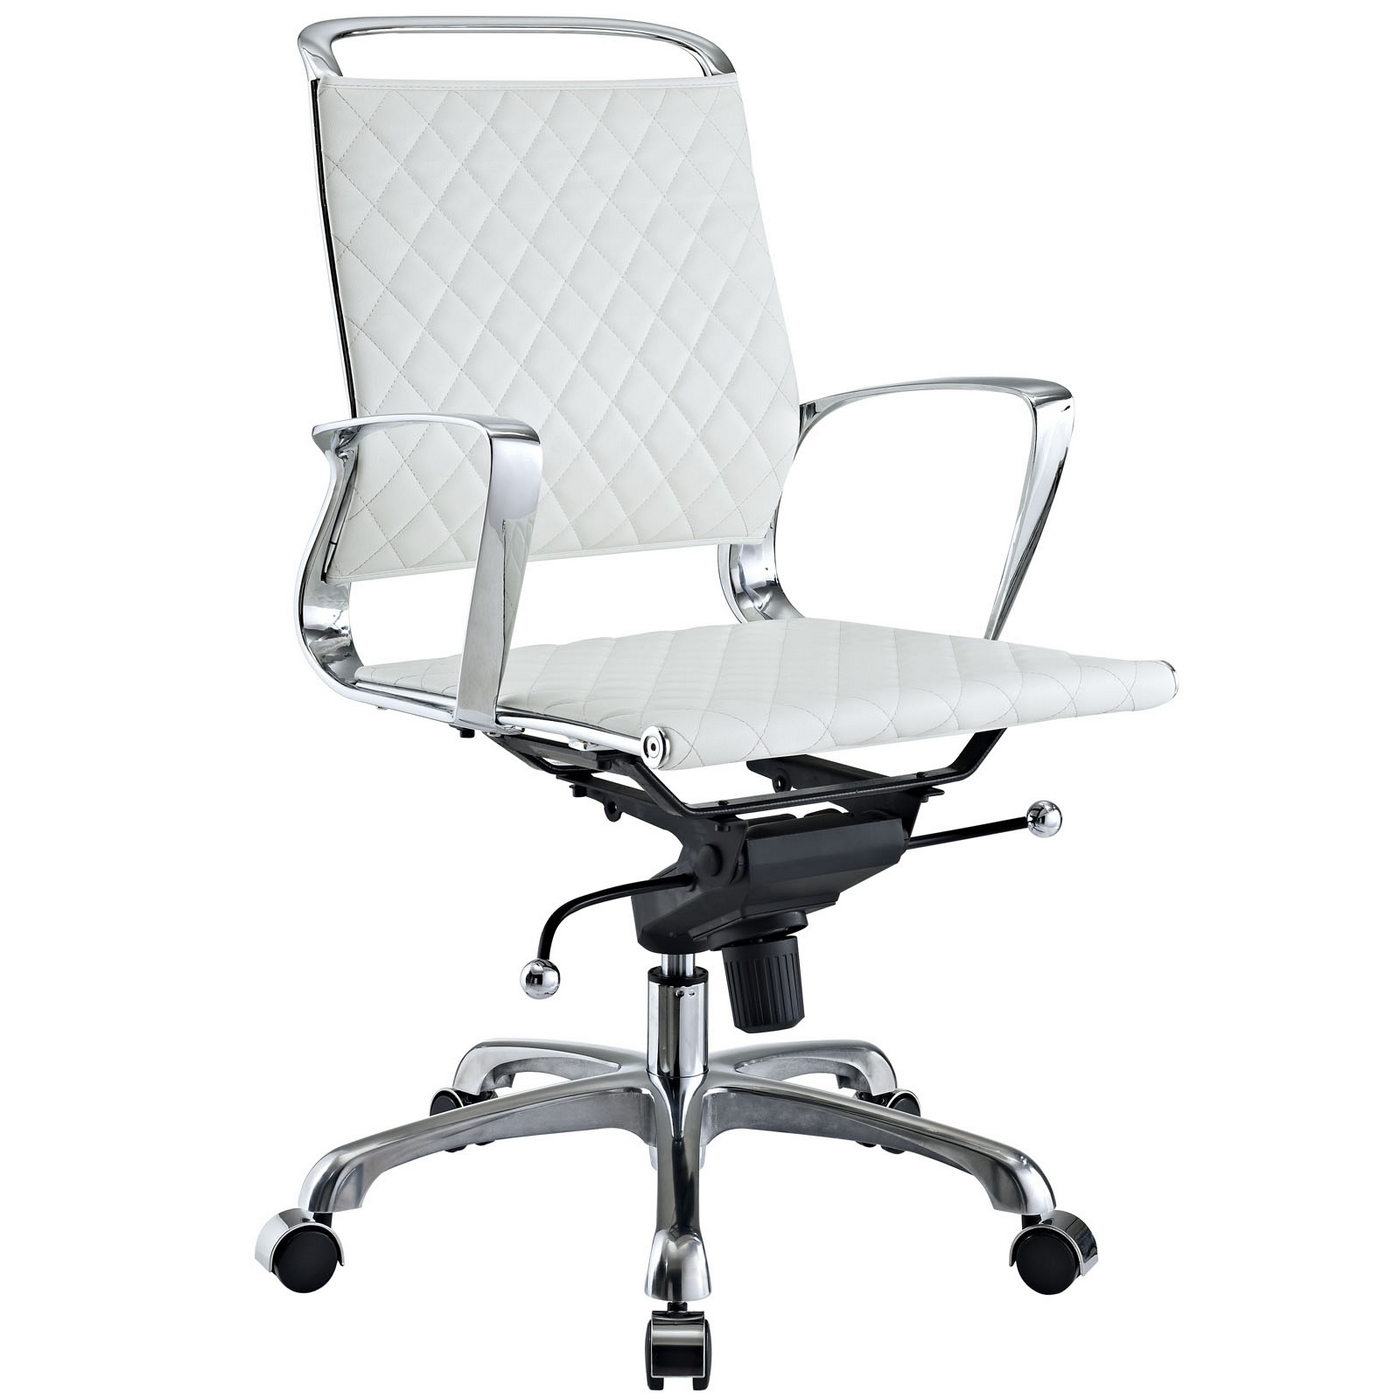 modern white office chairs amazon poang chair covers vibe mid back leather with chrome